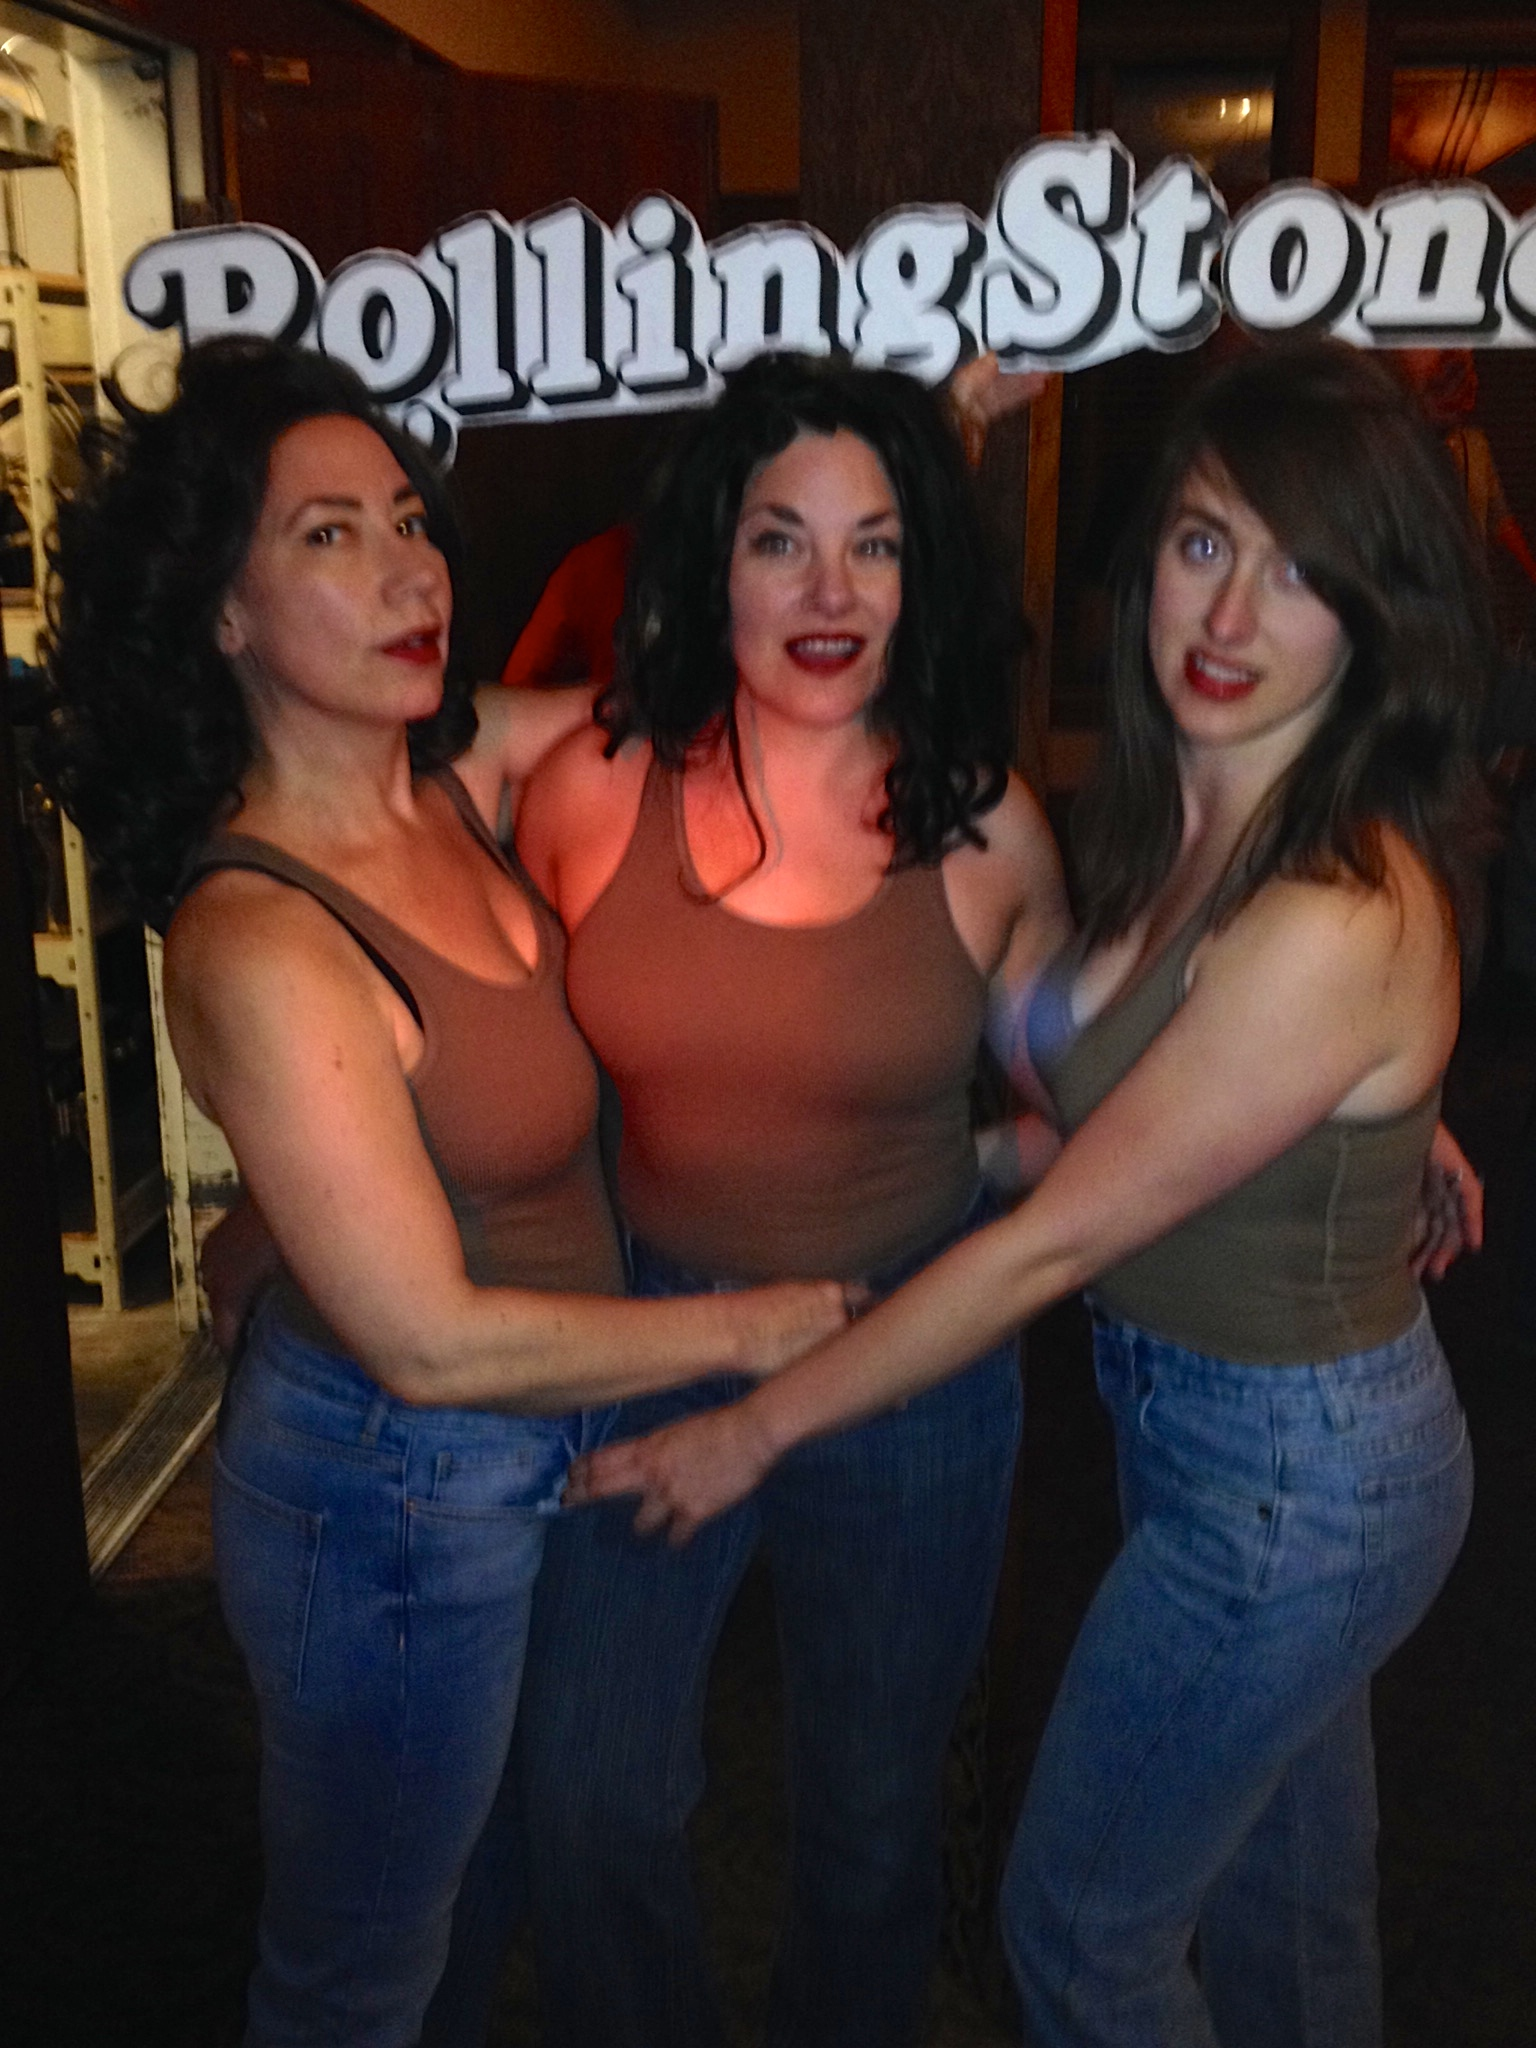 From left to right: Donna Hayward, Audrey Horne and Shelly Johnson